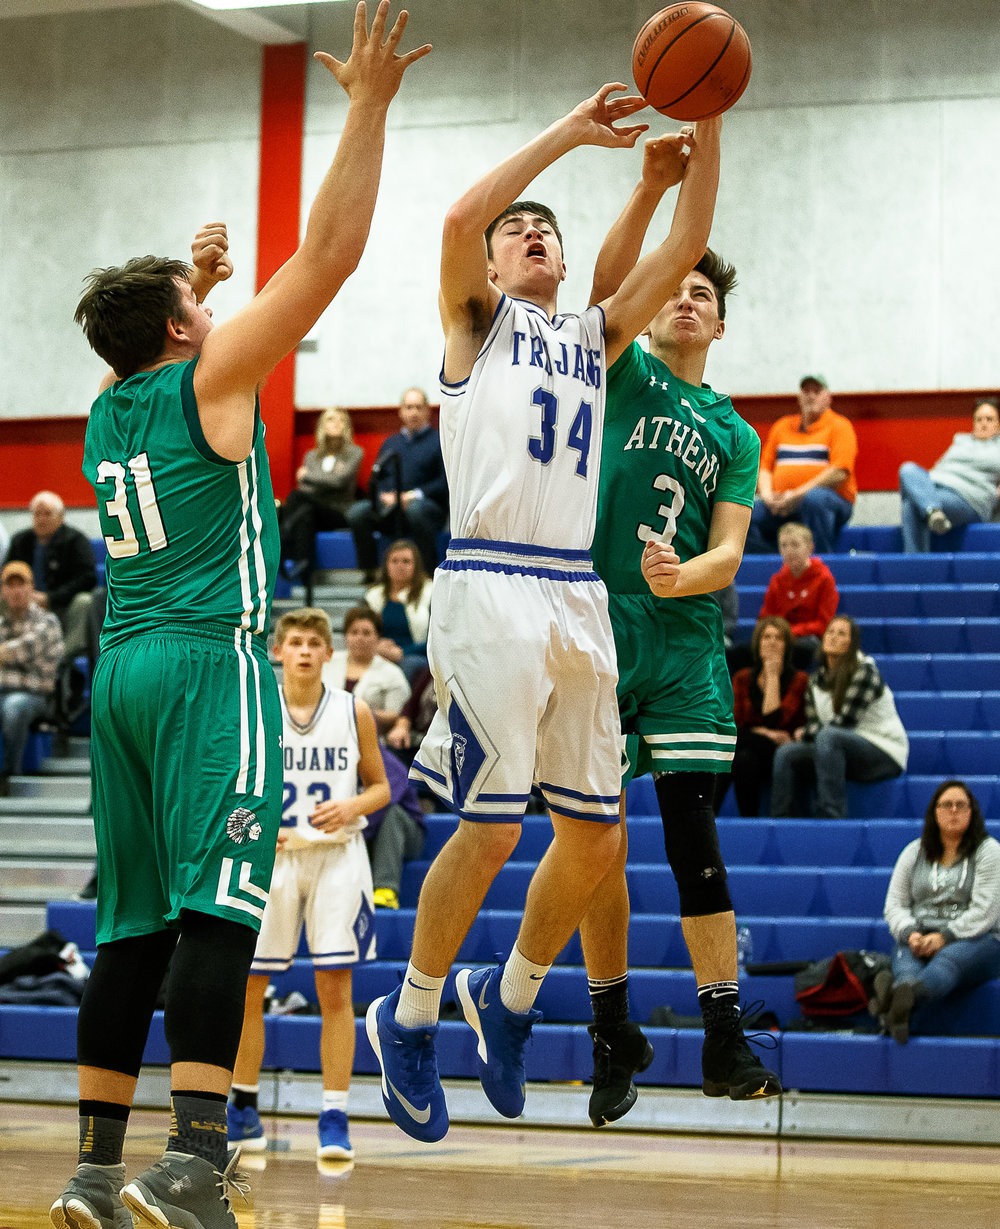 Auburn's Connor Tripp (34) has his shot blocked by Athens' Jack Richards (3) in the first half during opening night of the Boys Sangamon County Tournament at Lincoln Land Community College's Cass Gymnasium, Monday, Jan. 8, 2018, in Springfield, Ill. [Justin L. Fowler/The State Journal-Register]